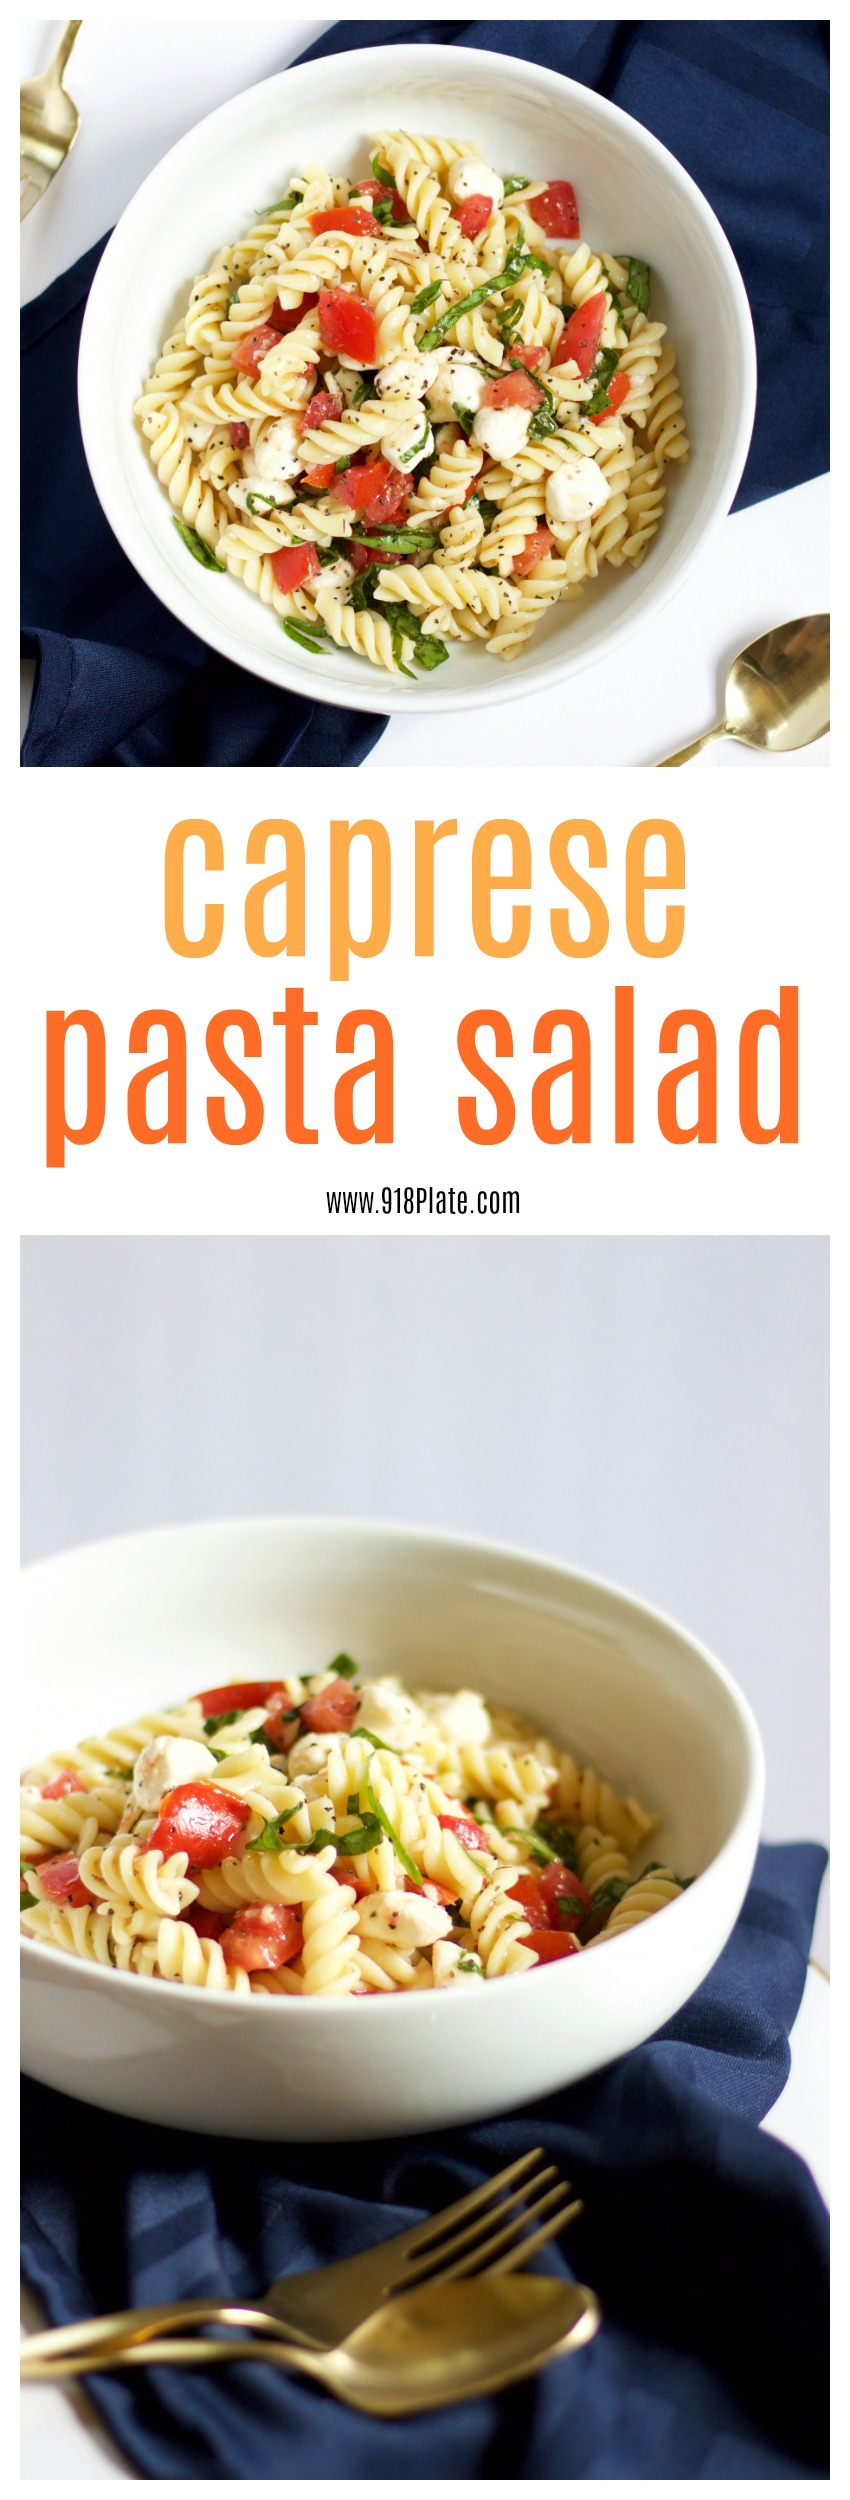 This caprese pasta salad is a fast way to make a quick lunch or snack that tastes fresh and light!